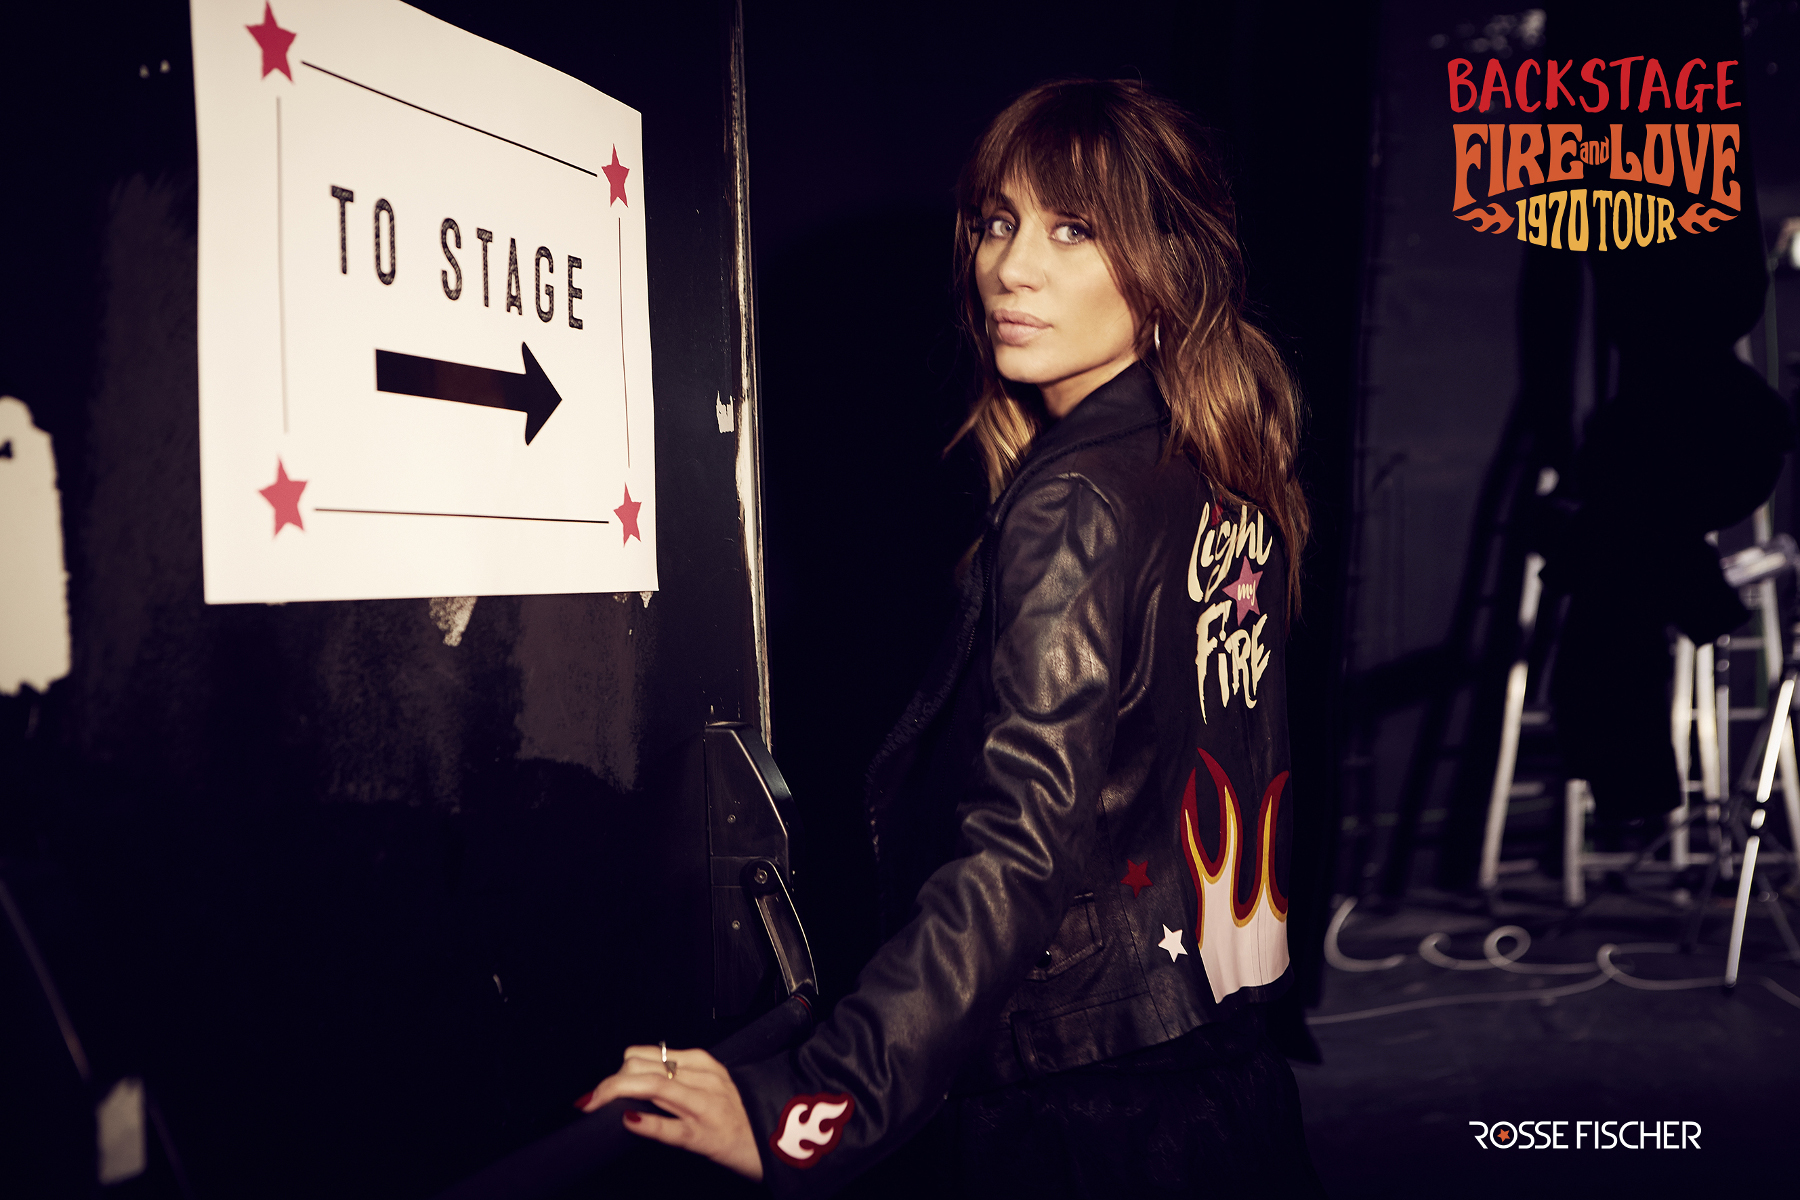 Campaign Backstage Fire and Love 1970 Tour Elena Tablada